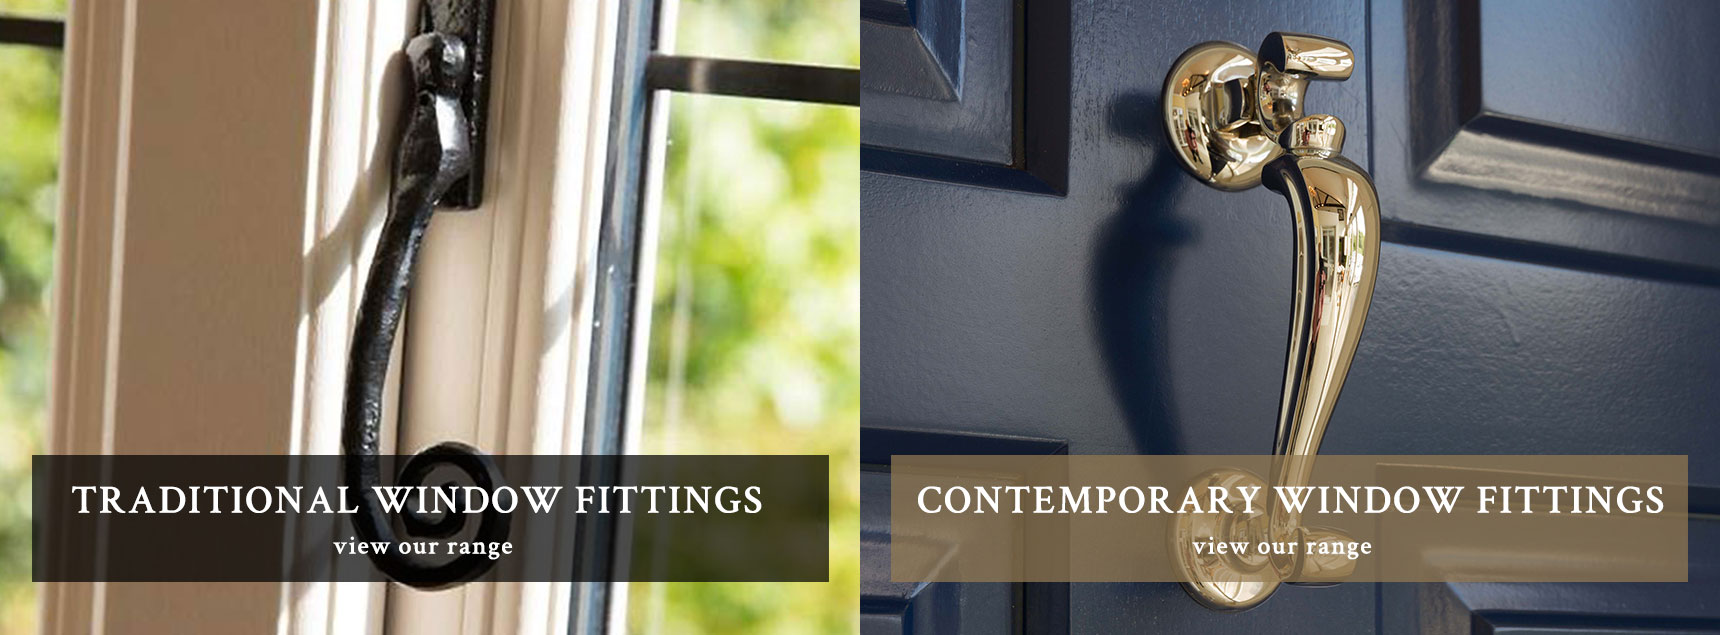 Traditional and Contemporary Window Fittings